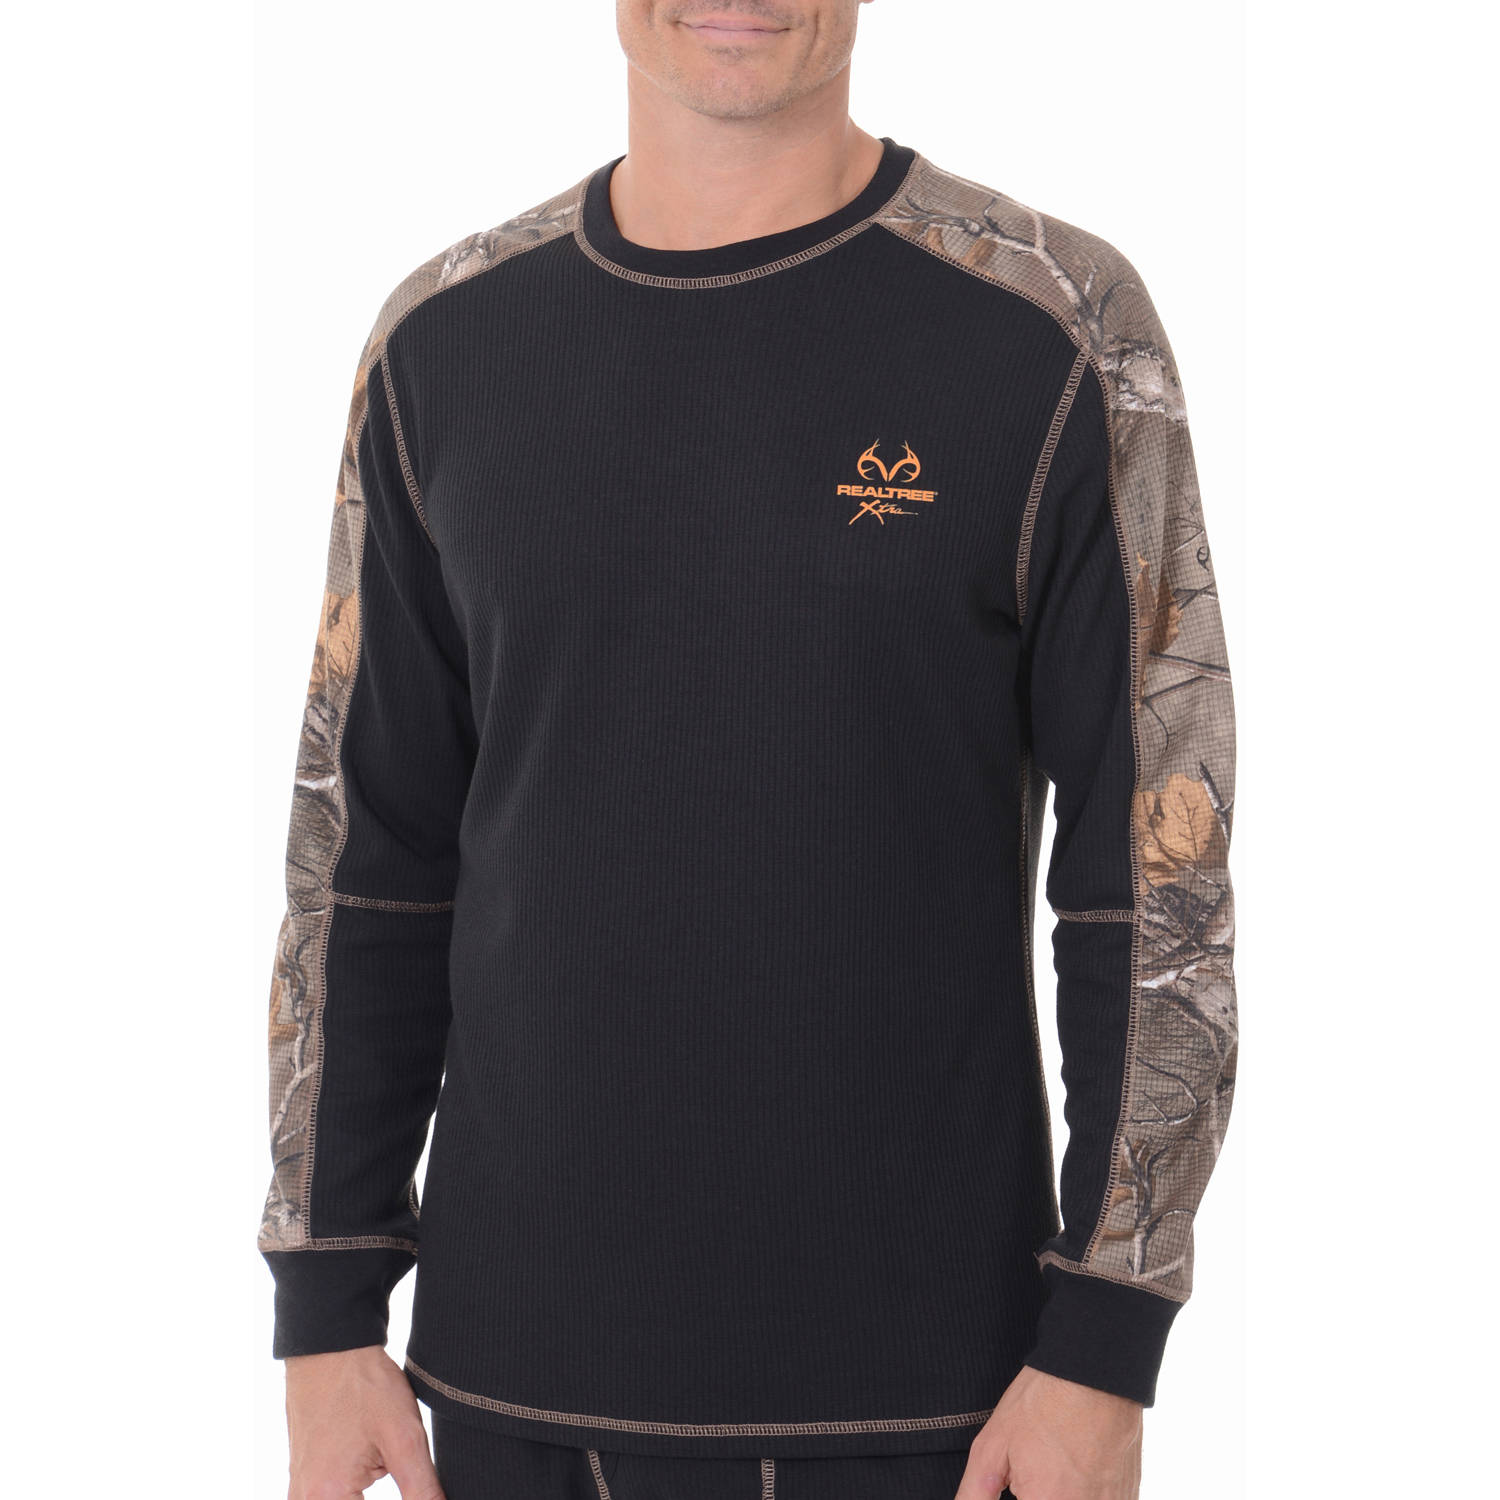 Realtree Mens Midweight Performance Thermal Top